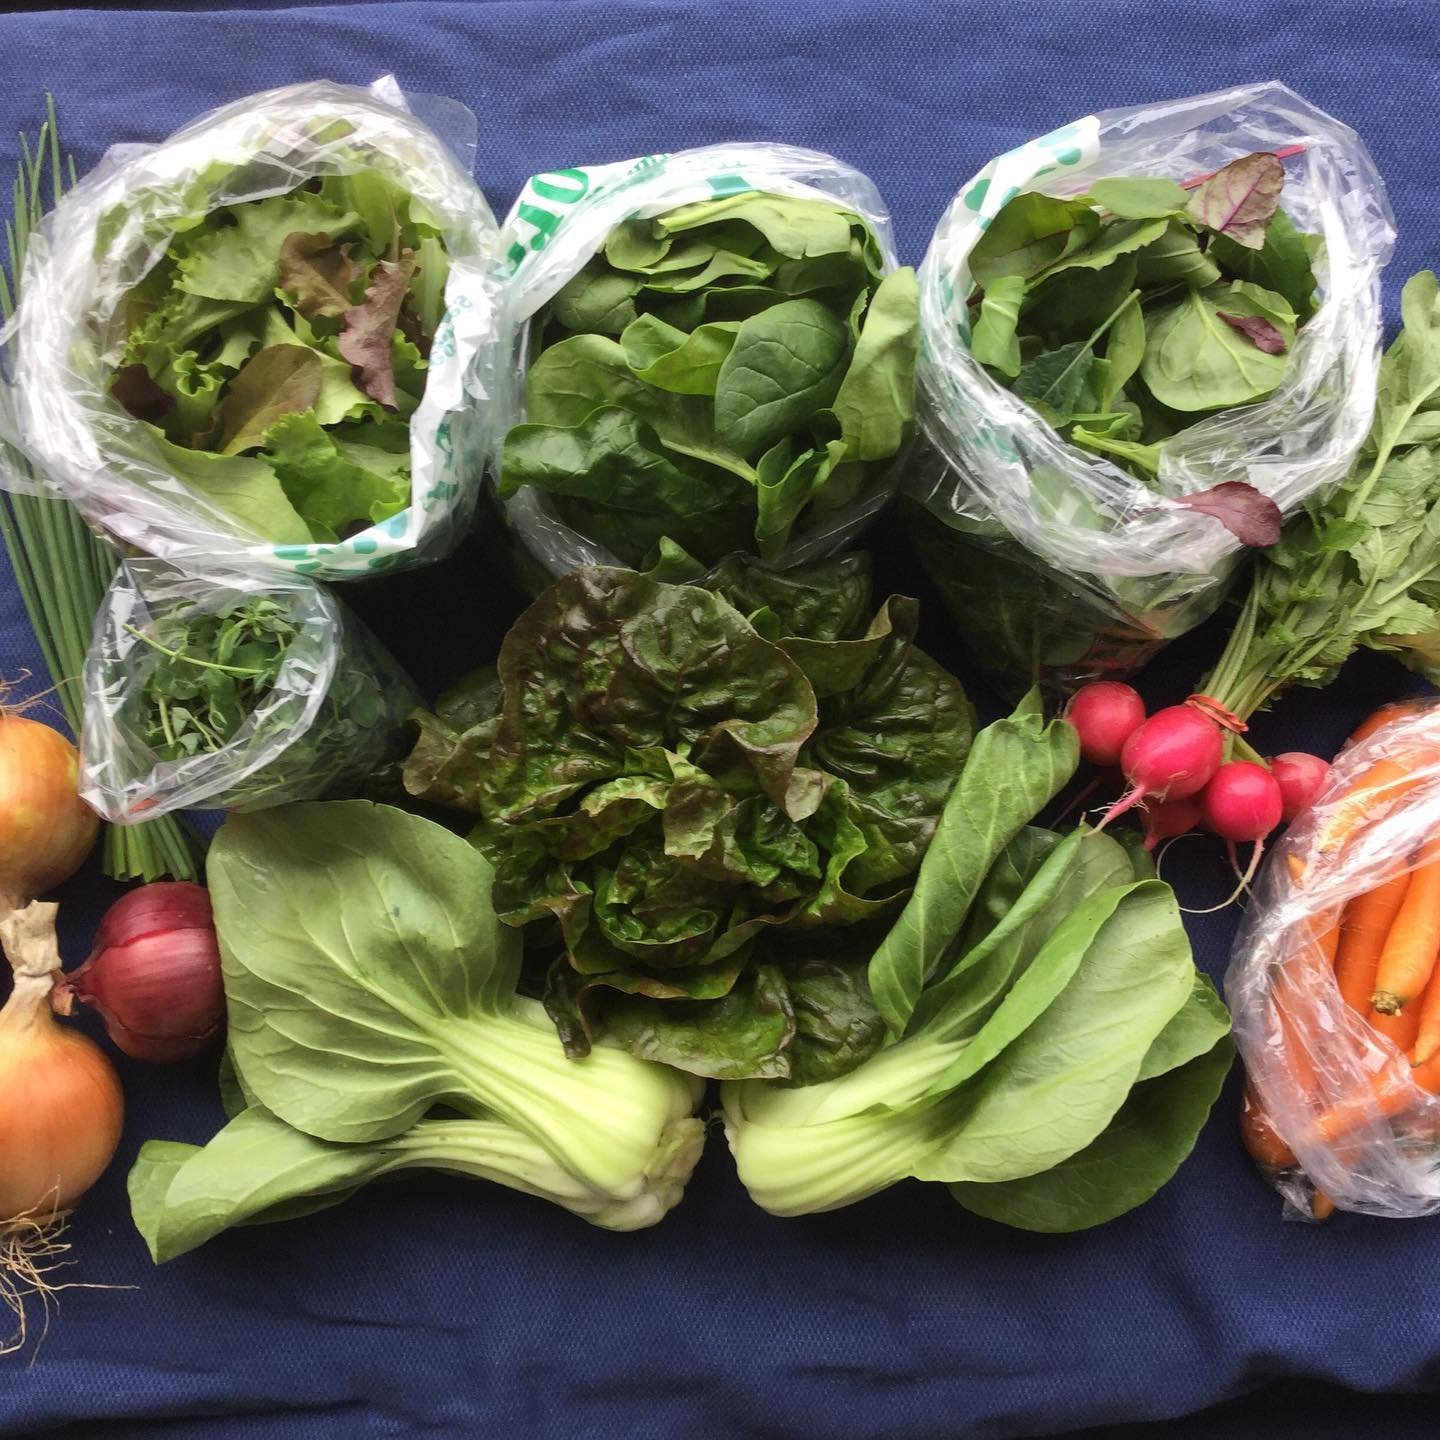 Previous Happening: Spring Share: Week 2